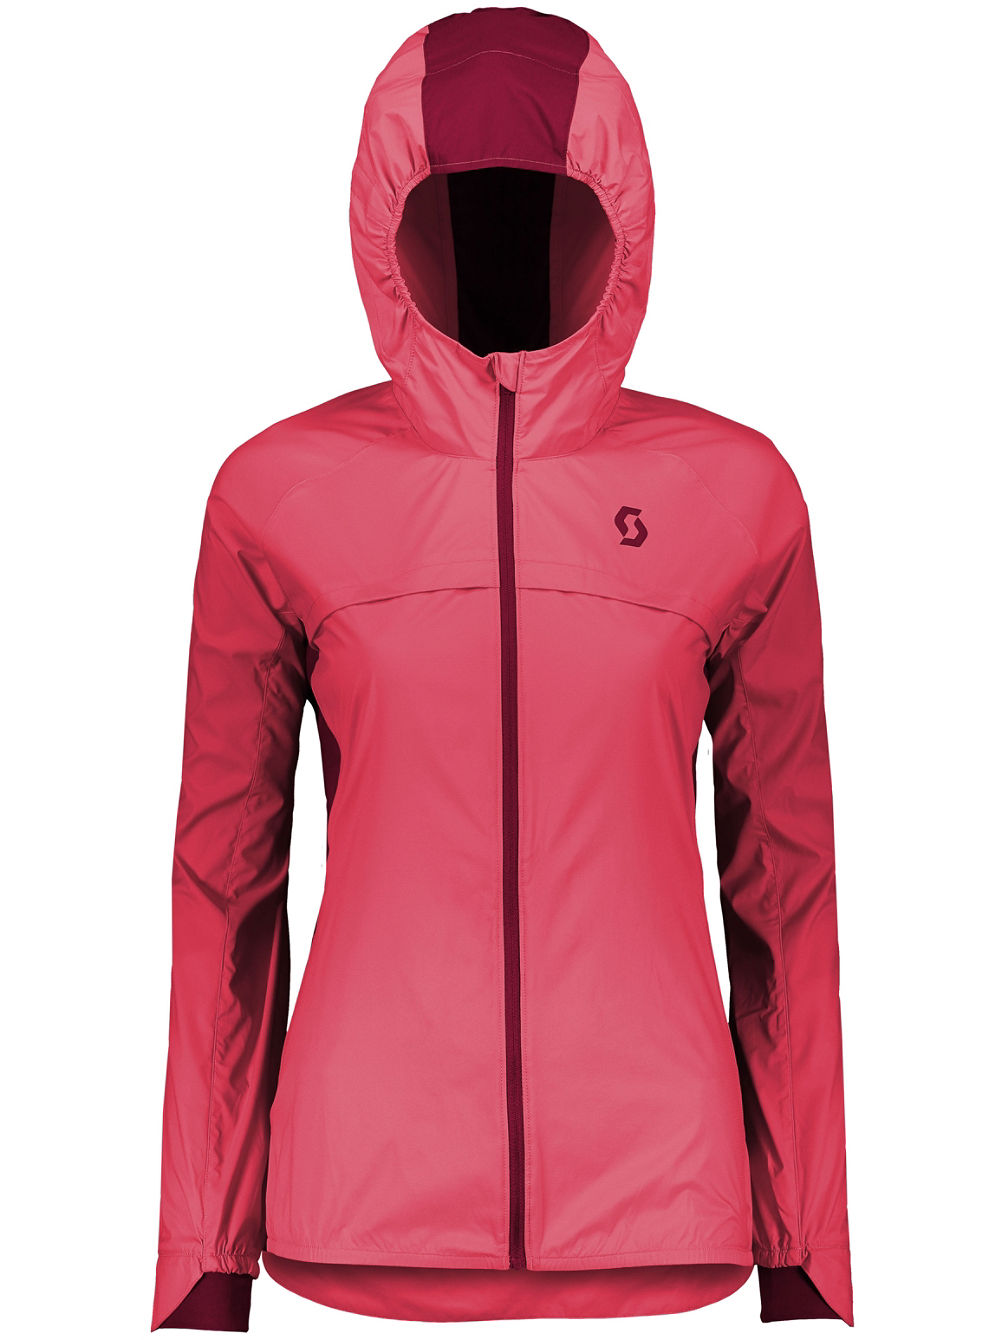 Trail Mtn 40 Windbreaker